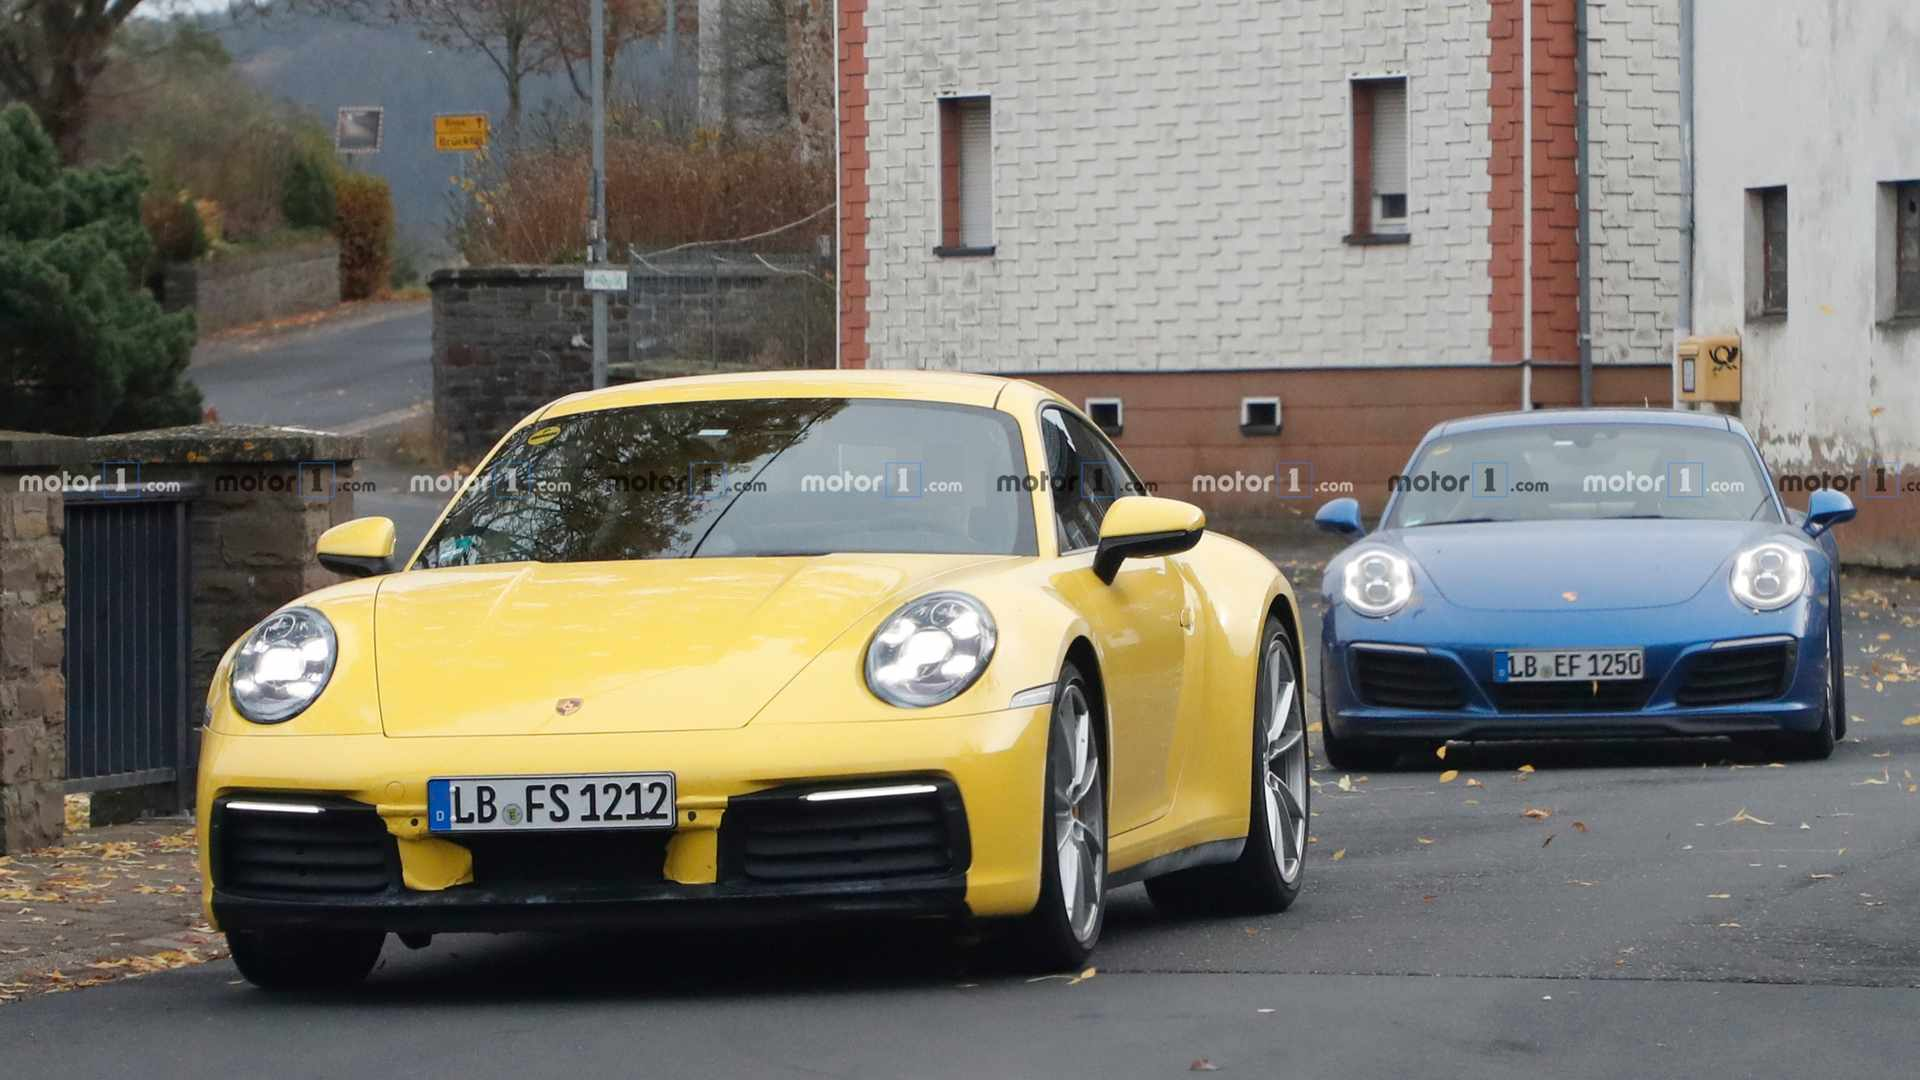 2018 - [Porsche] 911 - Page 9 Porsche-911-old-vs-news